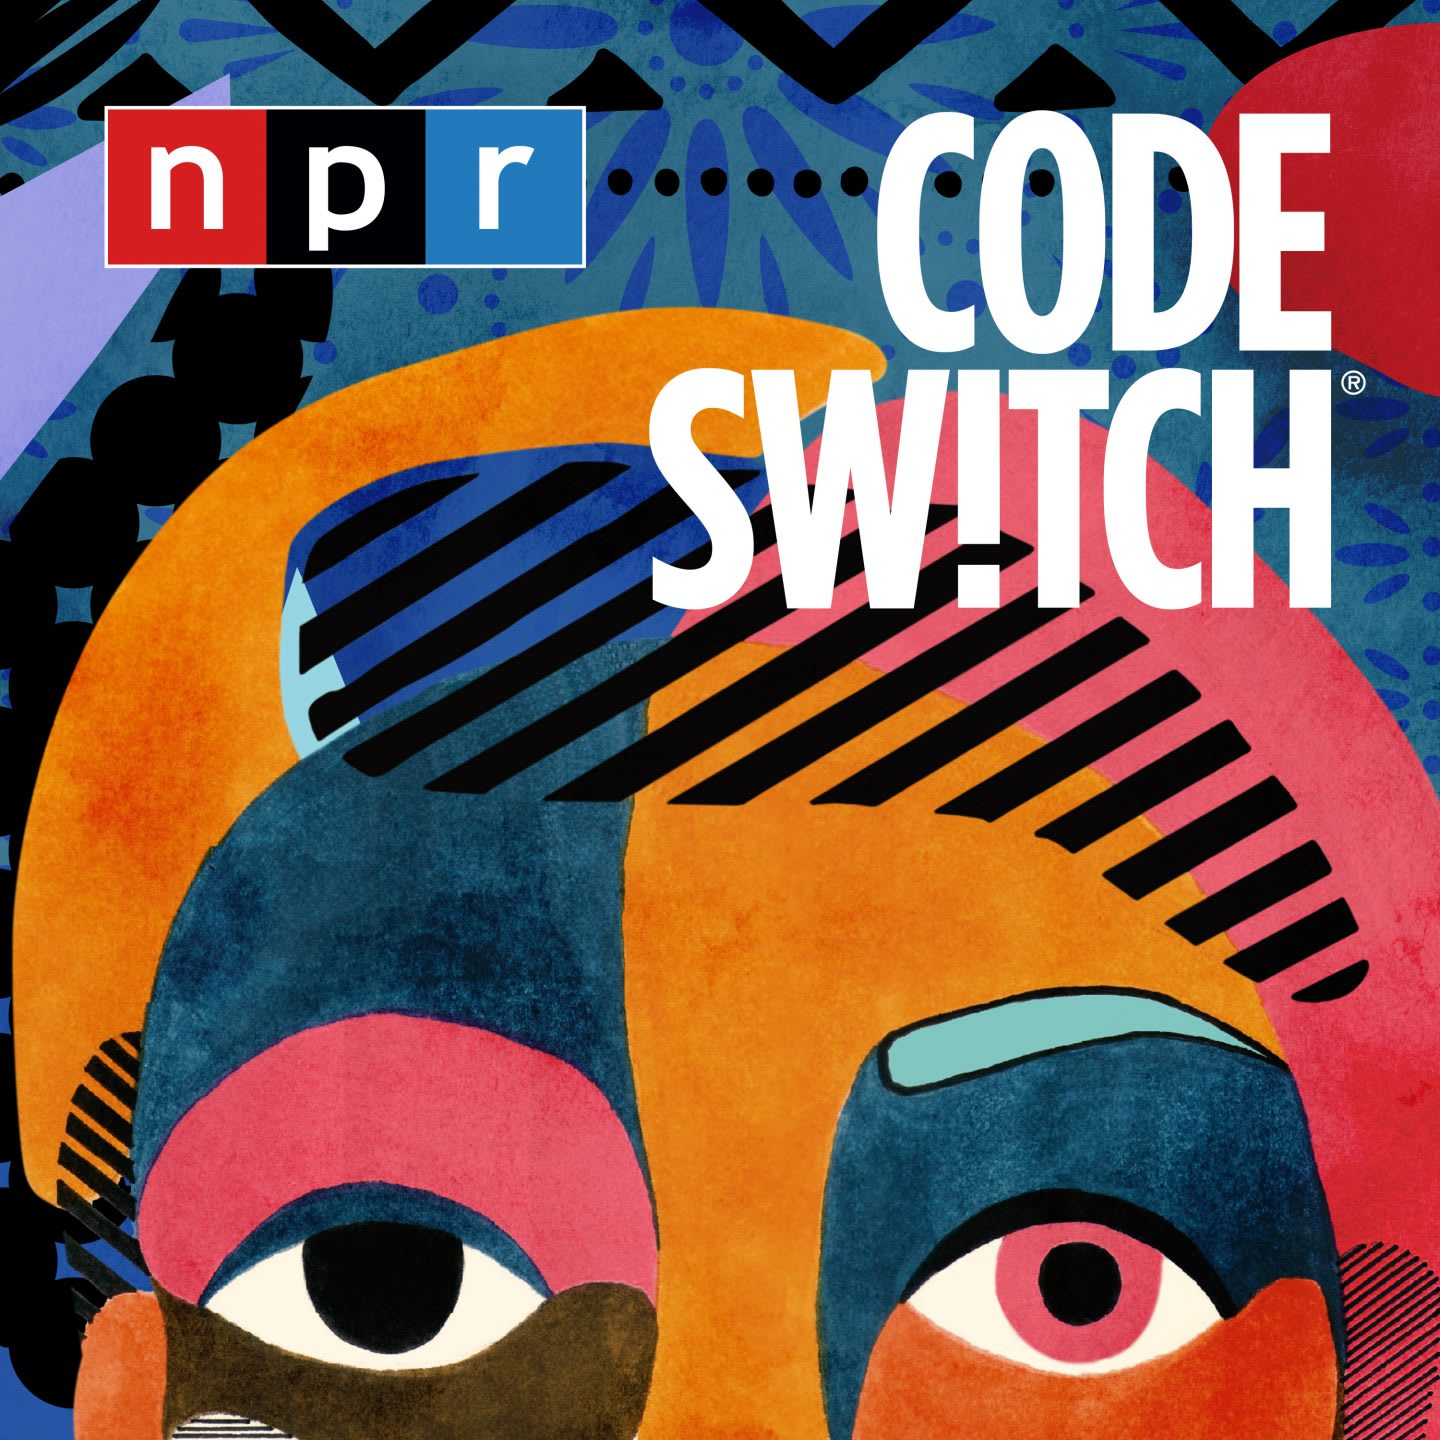 Colorful drawing of a face in abstract style, NPR, Code Switch, artwork